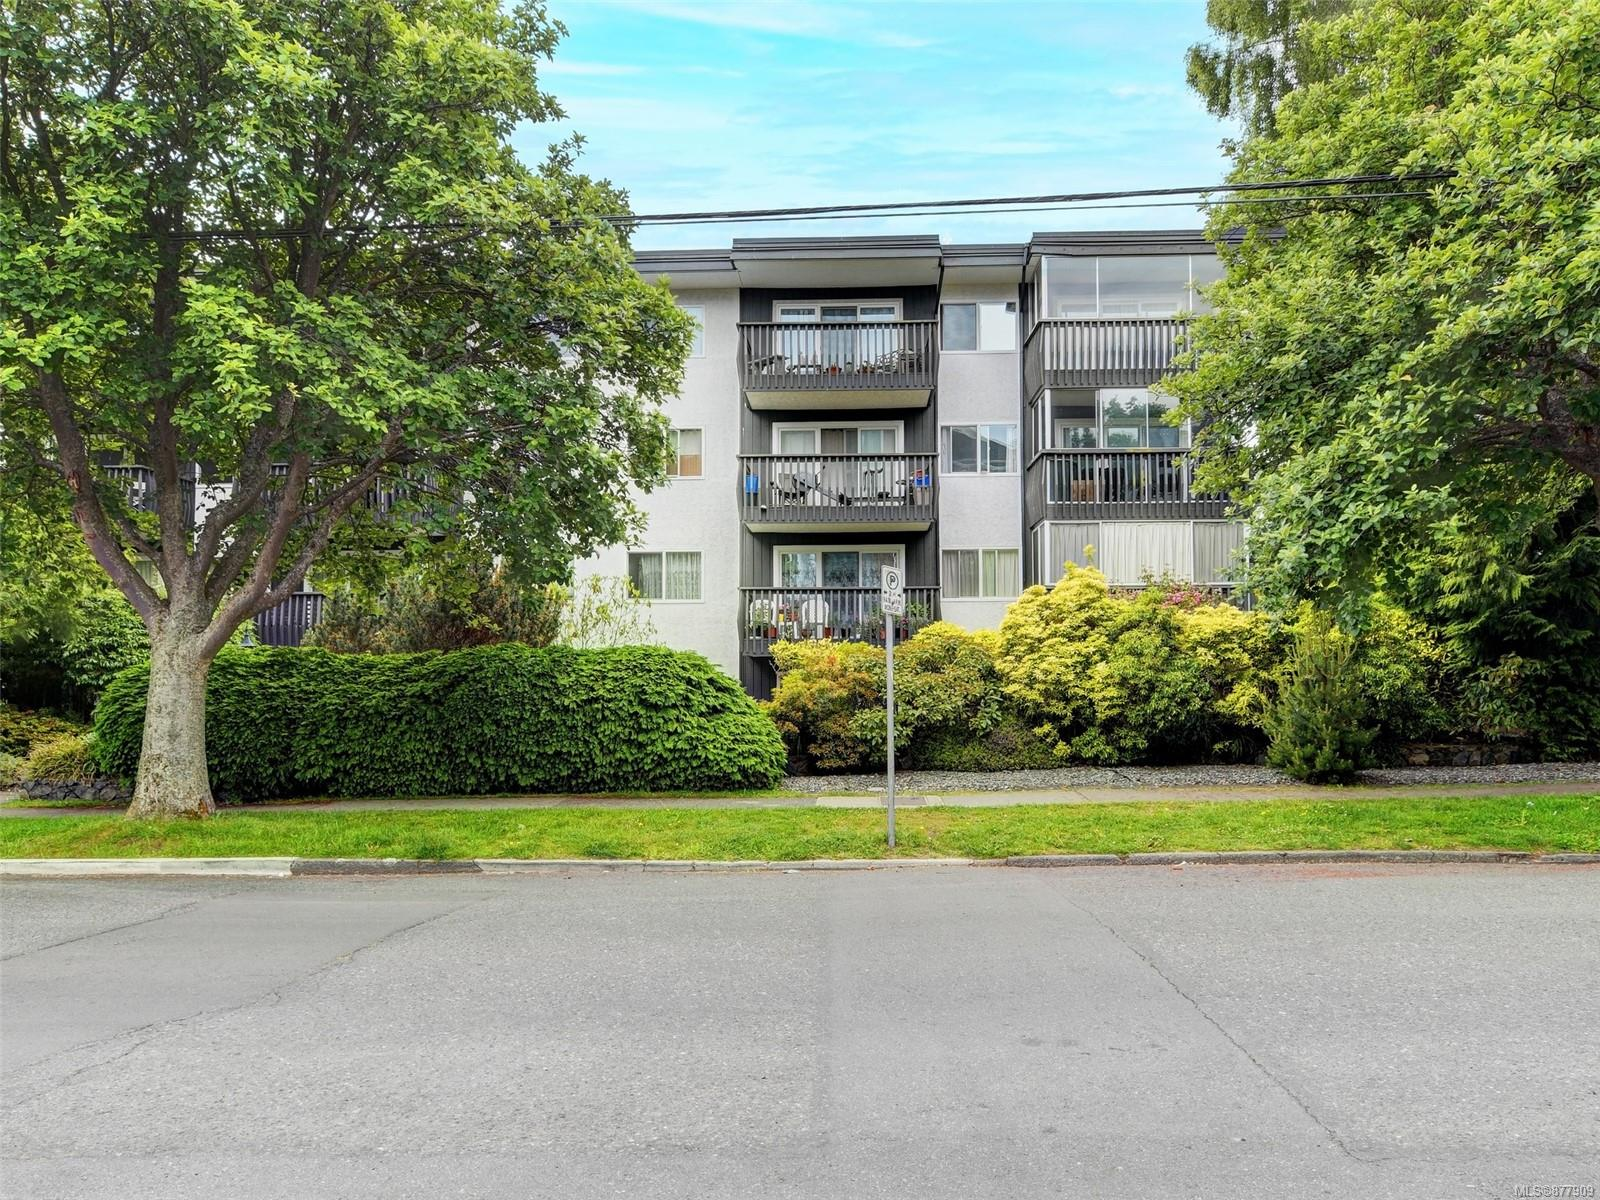 302 - 1035 Mcclure Street, Downtown, Victoria